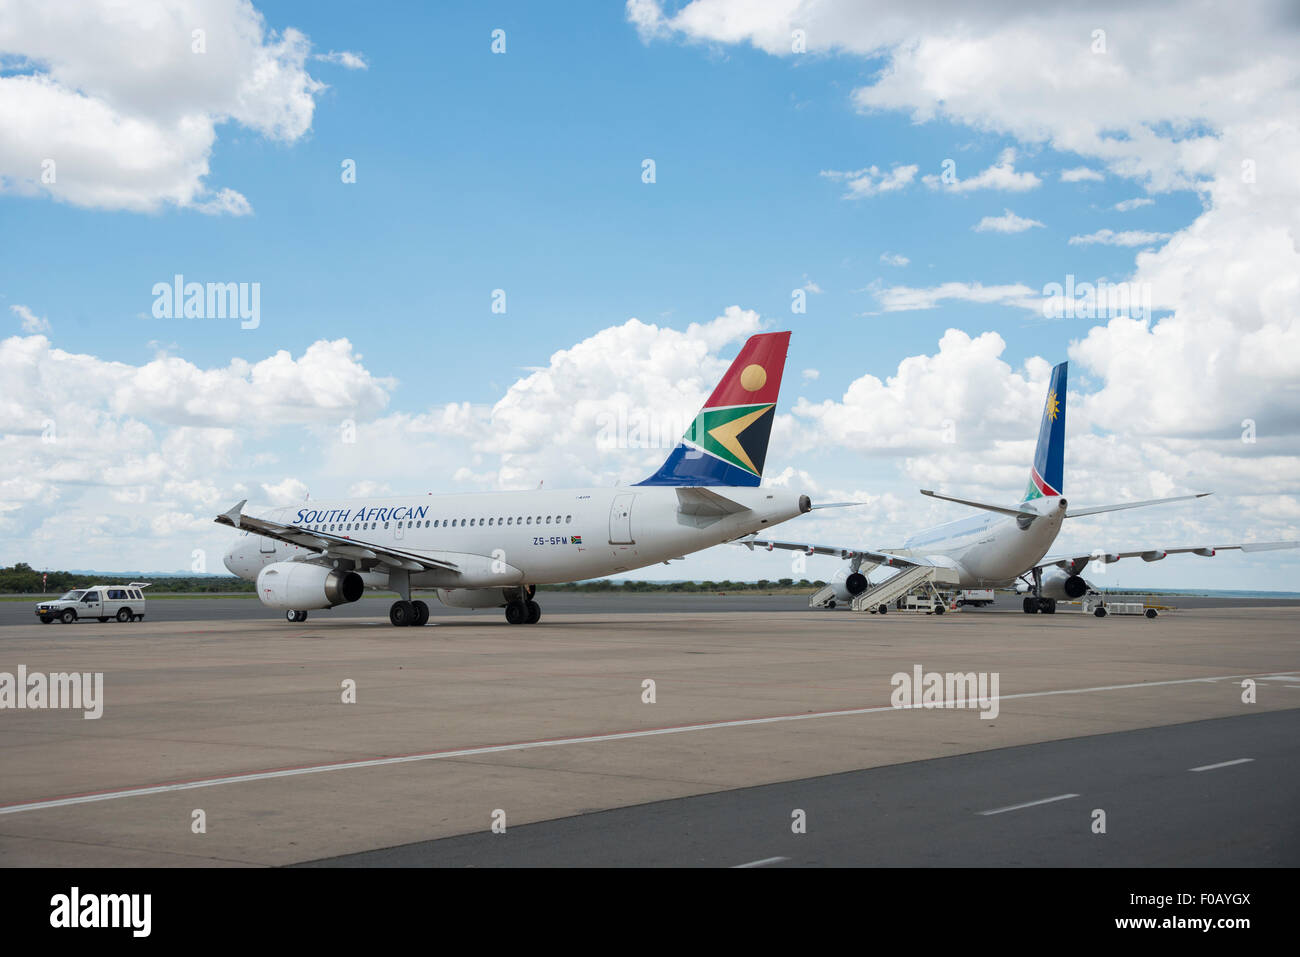 South African Airways Airbus A319 and Air Namibia aircraft at Hosea Kutako International Airport, Windhoek, Republic - Stock Image